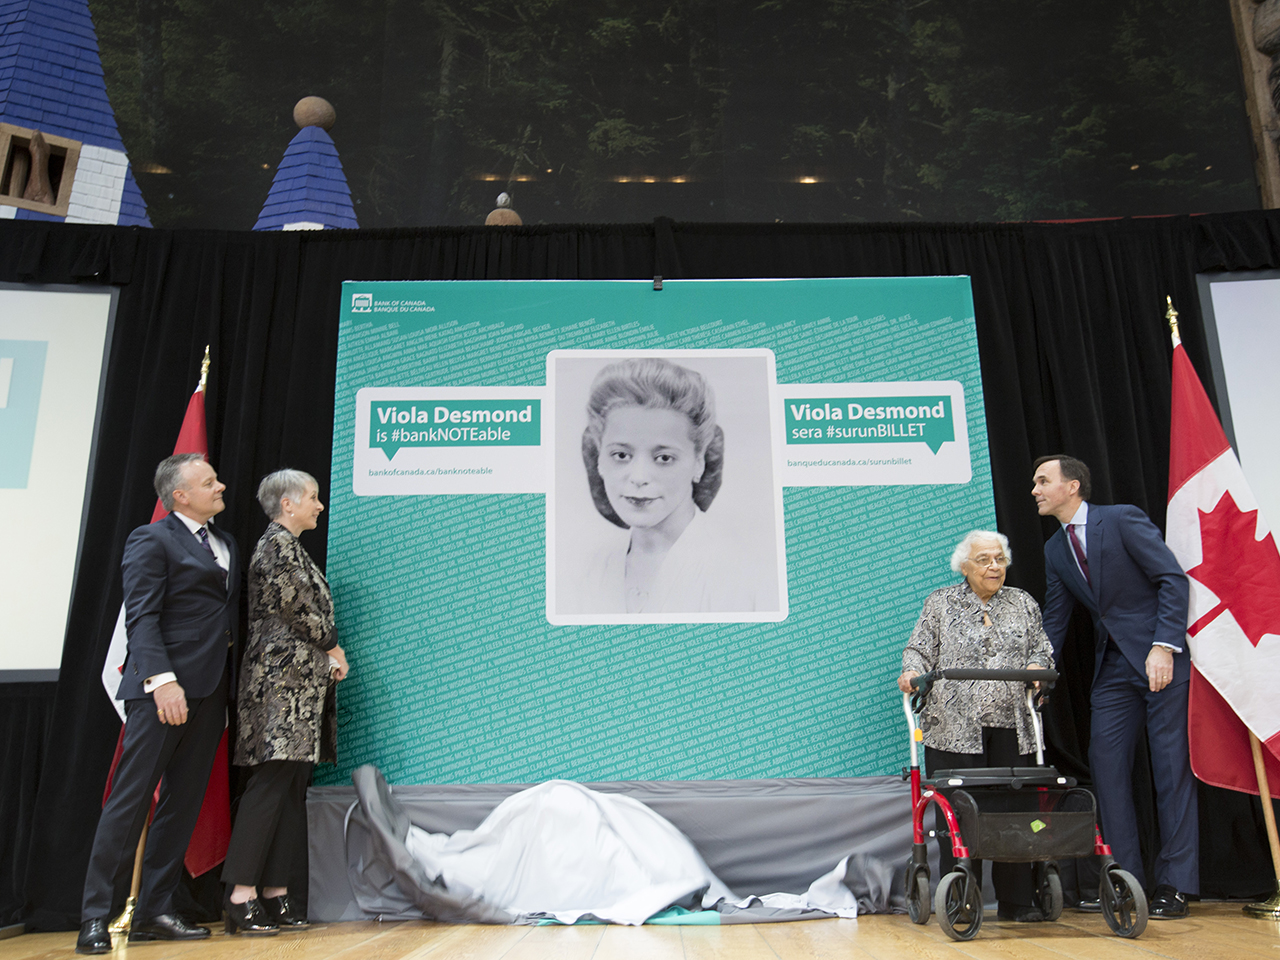 picture of Viola Desmond is revealed